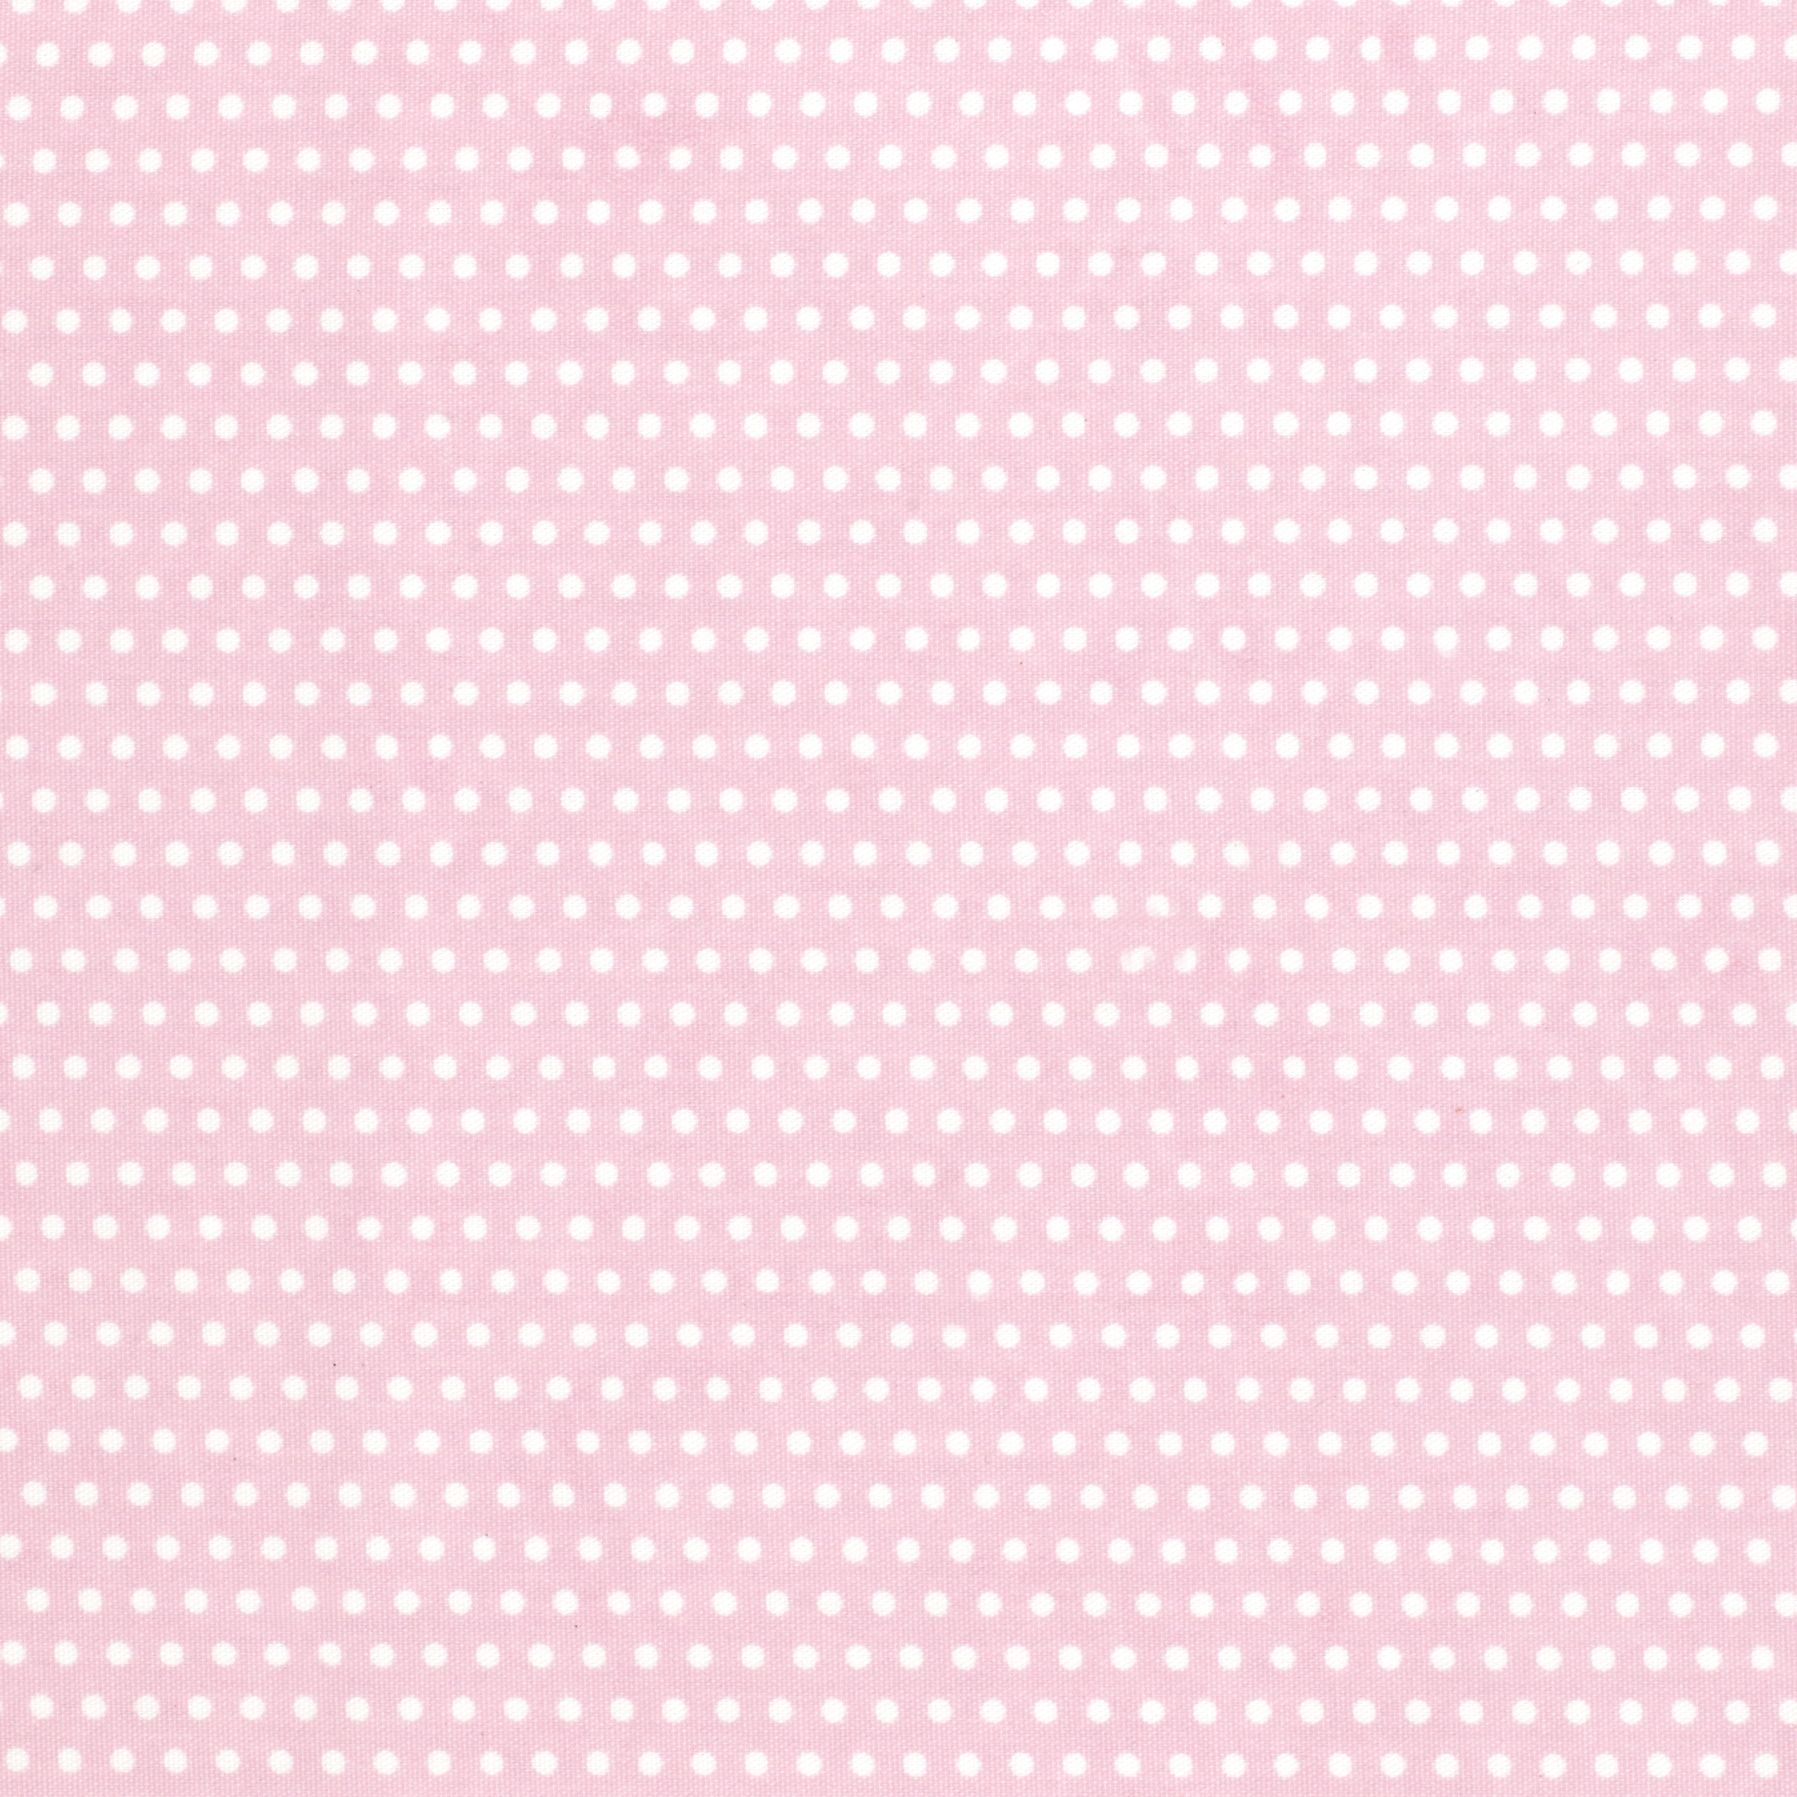 background patterns pink. pink background pattern.